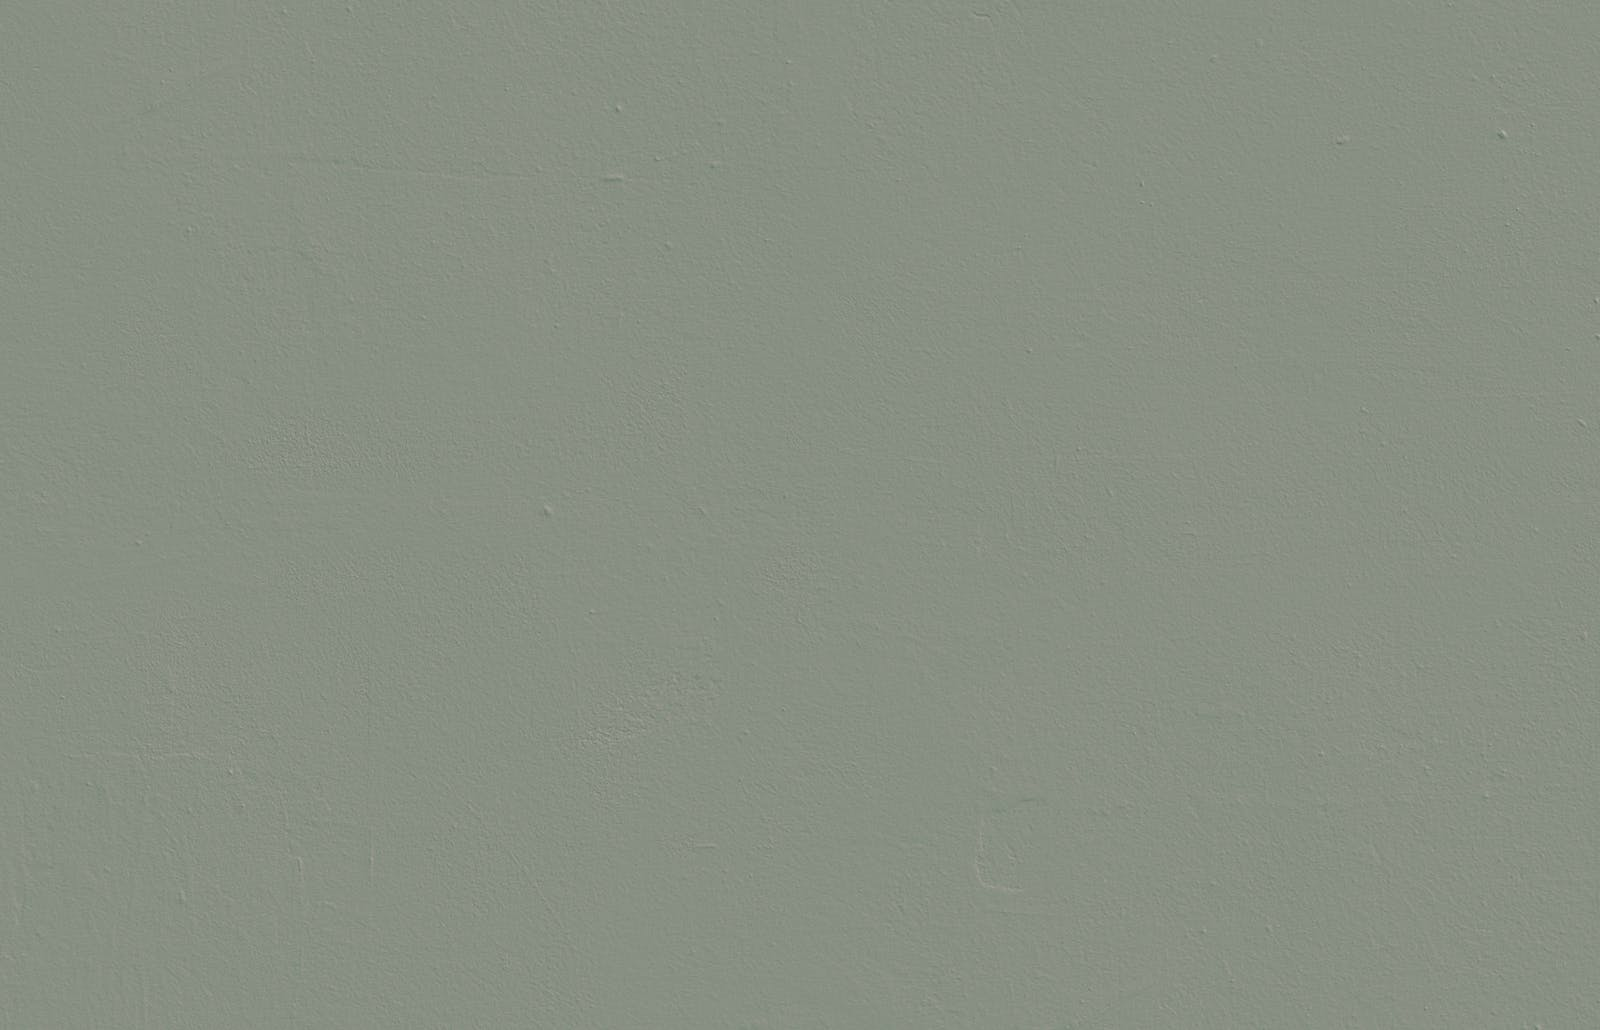 Textured wall painted in Lick Green 02 paint